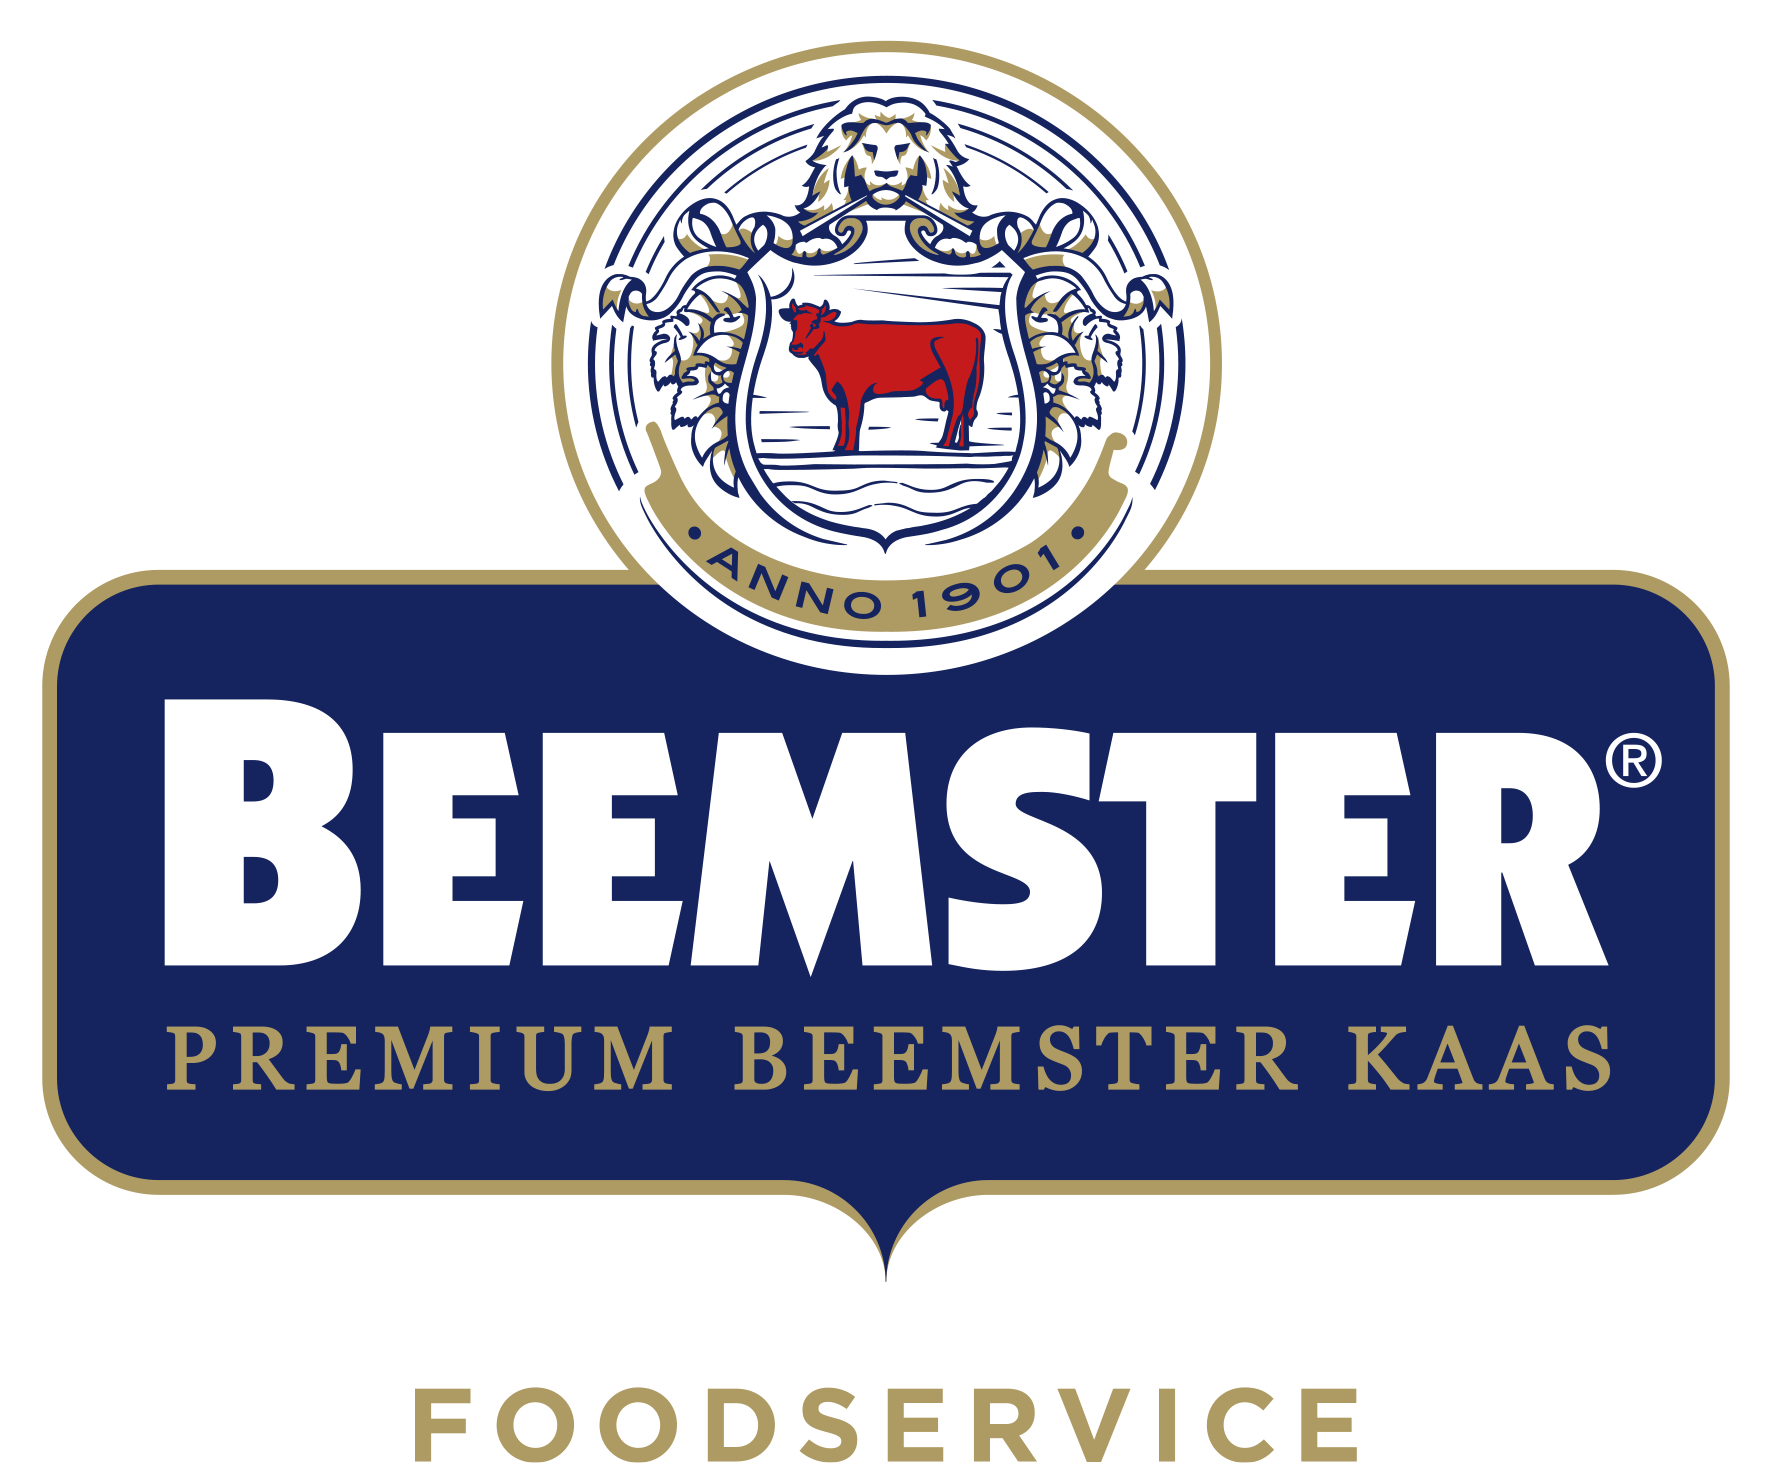 Beemster Foodservice